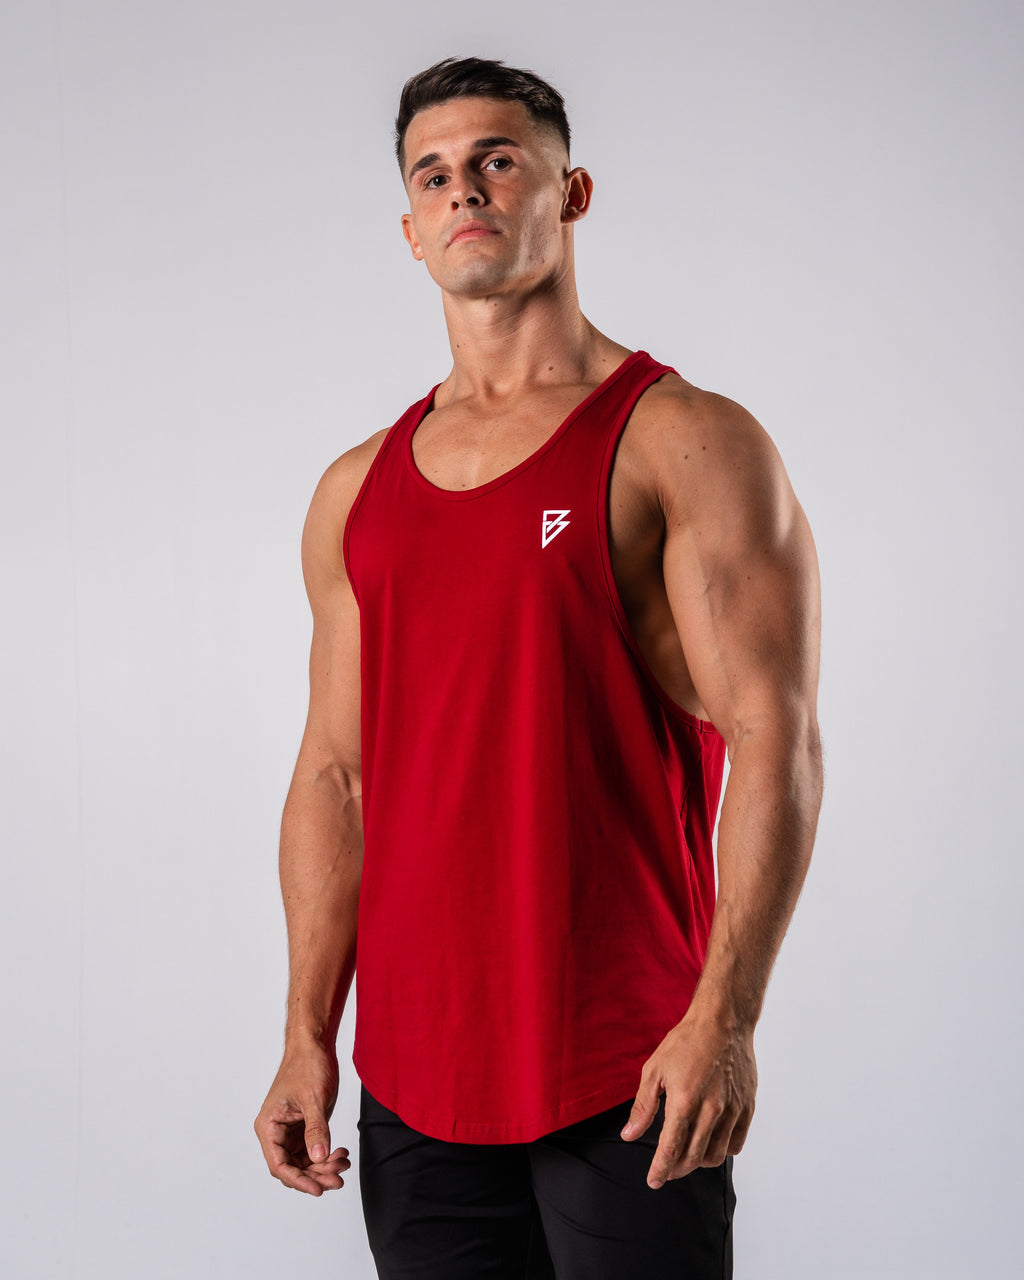 Inspire Cutoff - Red - FIO Athletics